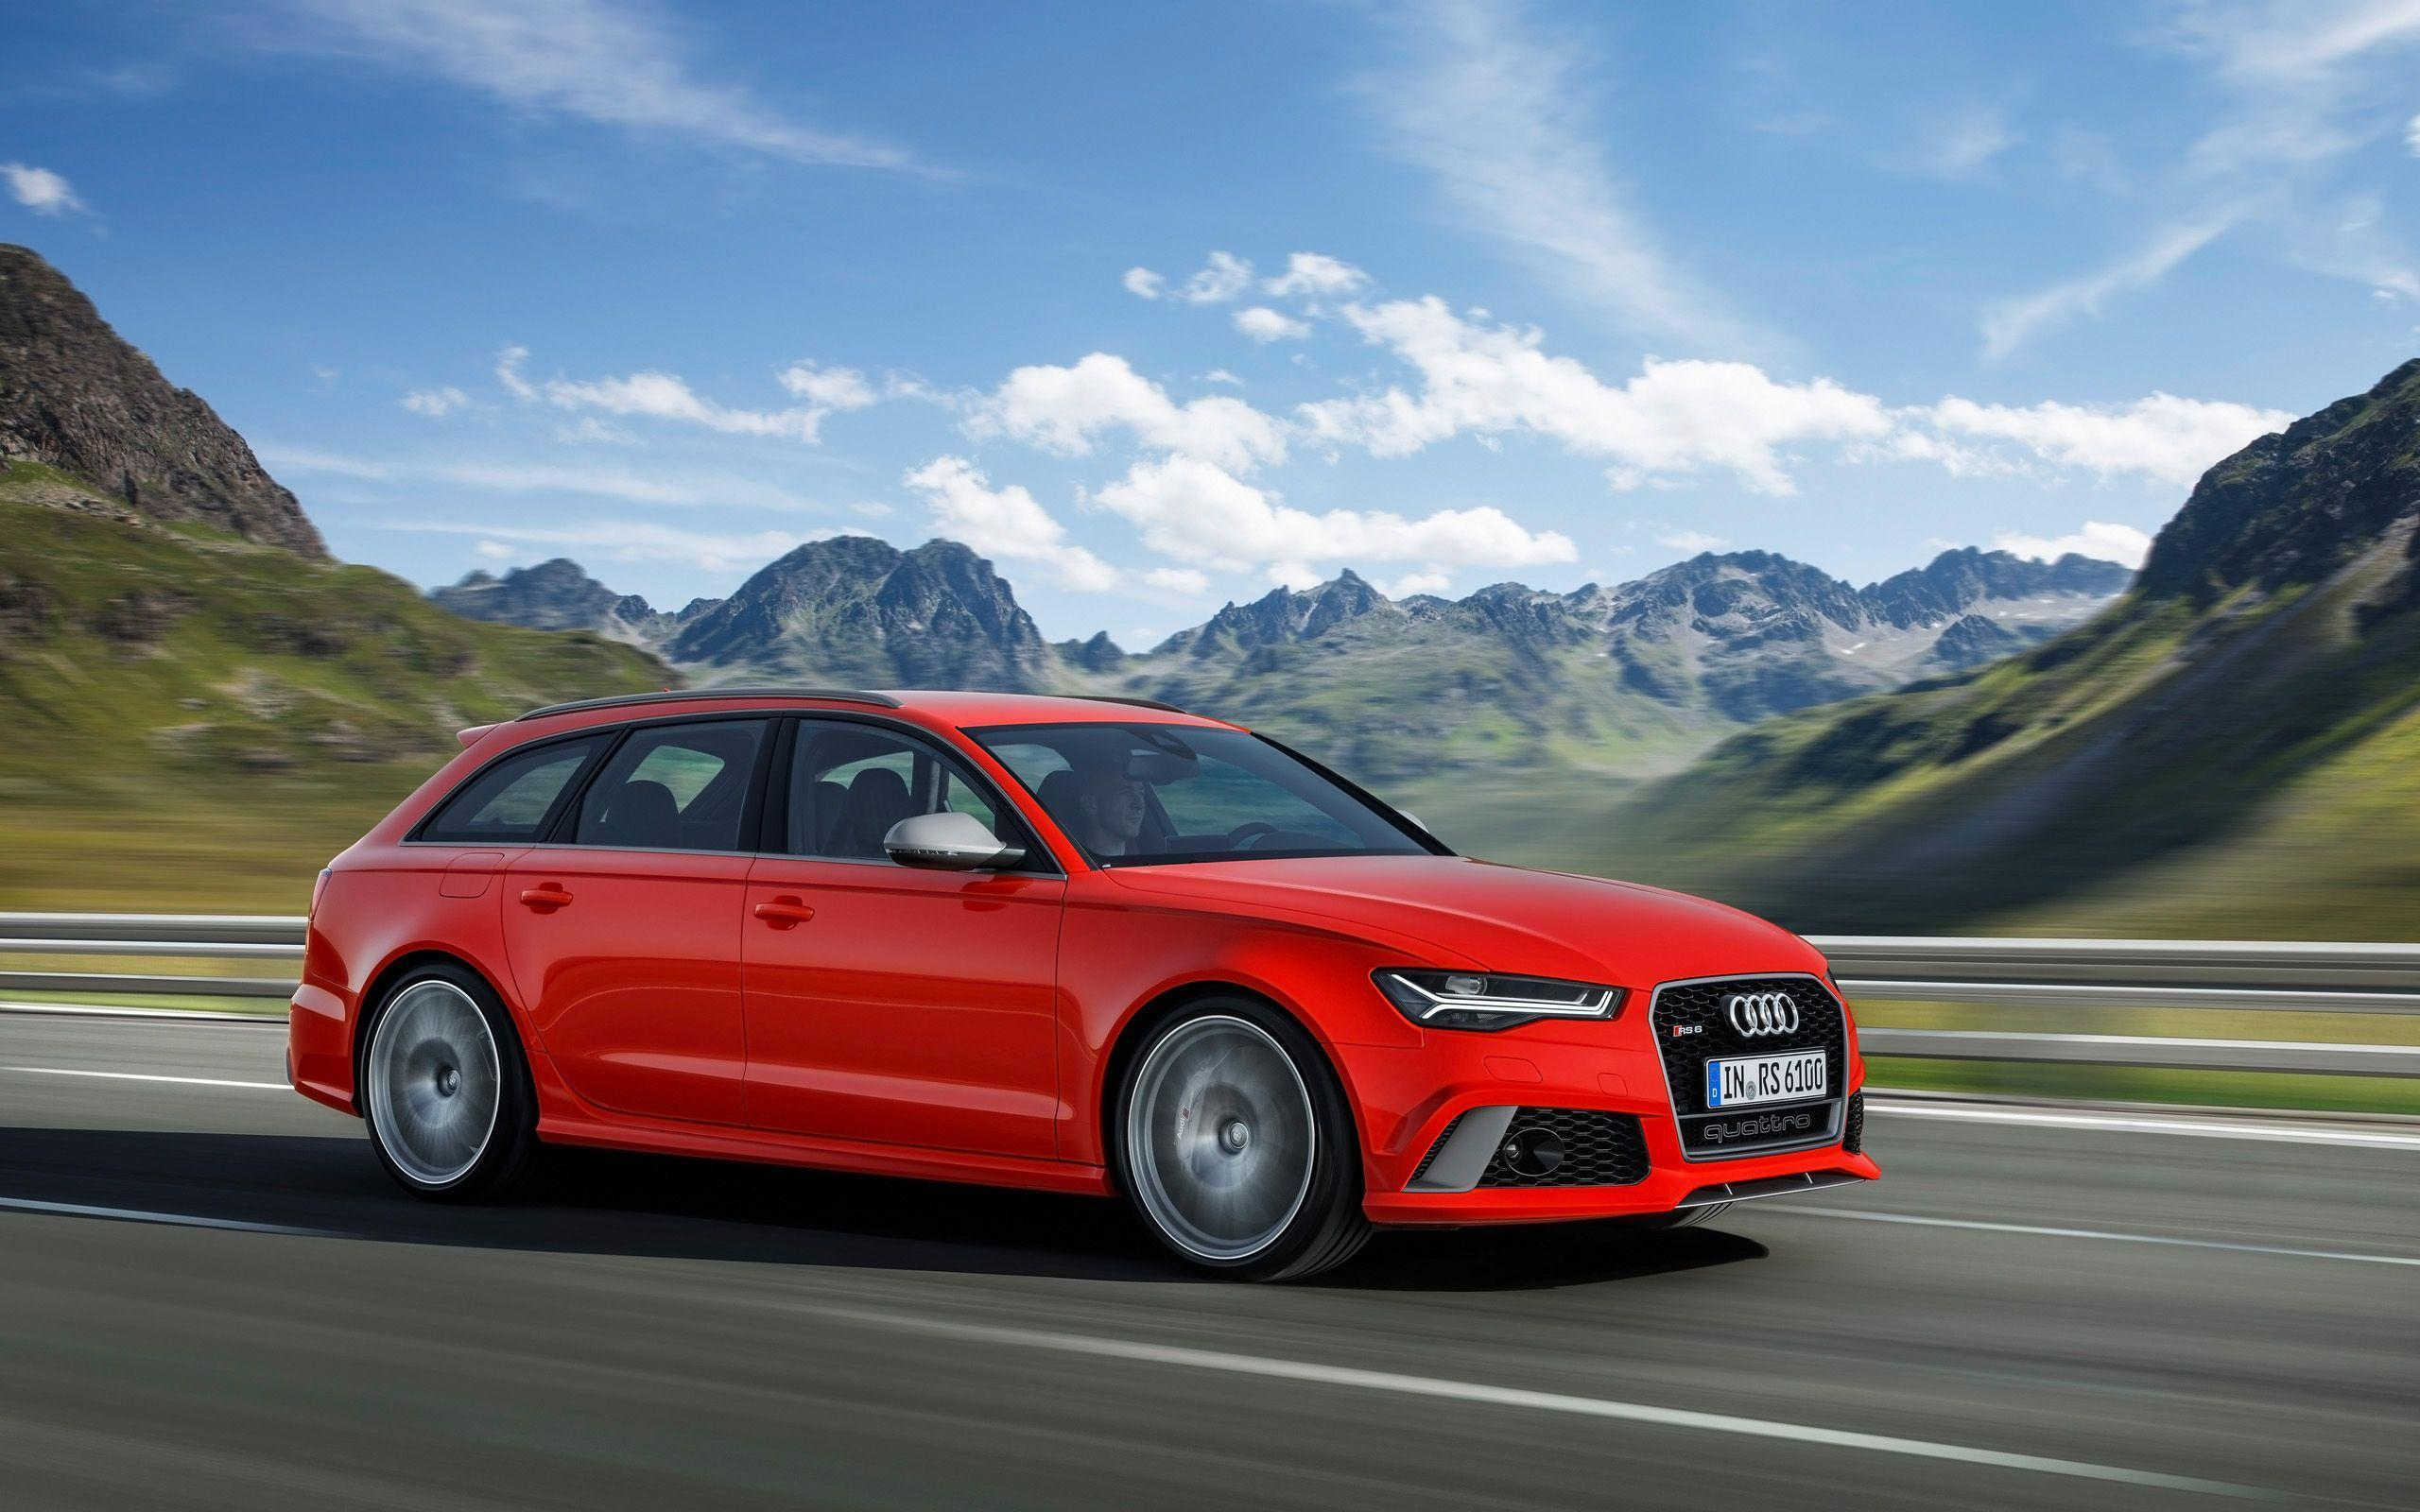 2016 Audi RS6 Avant Performance Wallpapers